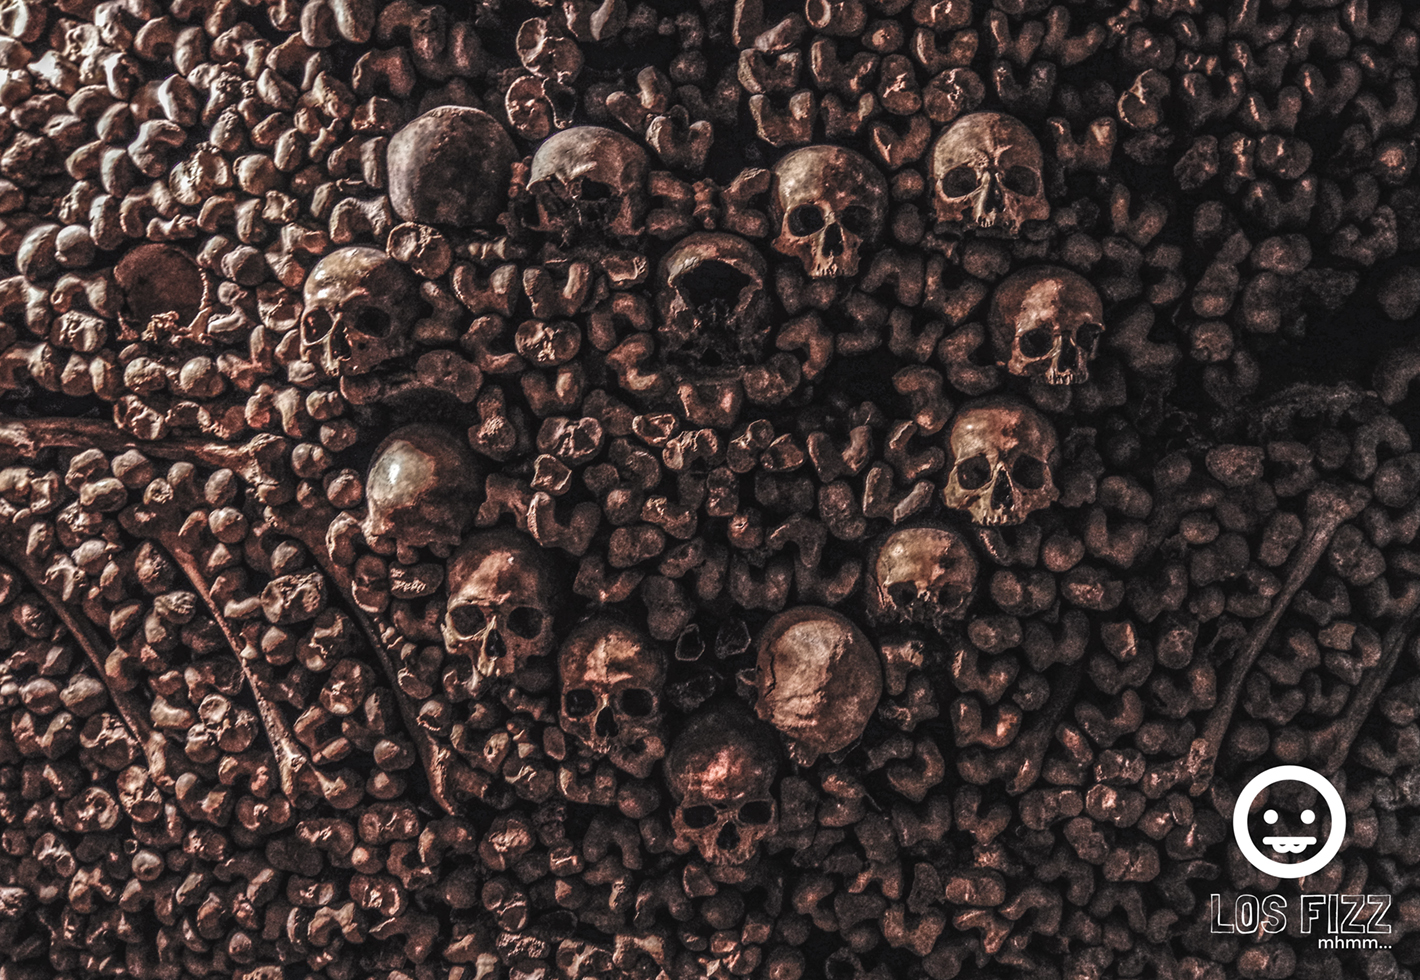 Heart made of skulls at the Catacombs of Paris, in France. Photo By LosFizz.